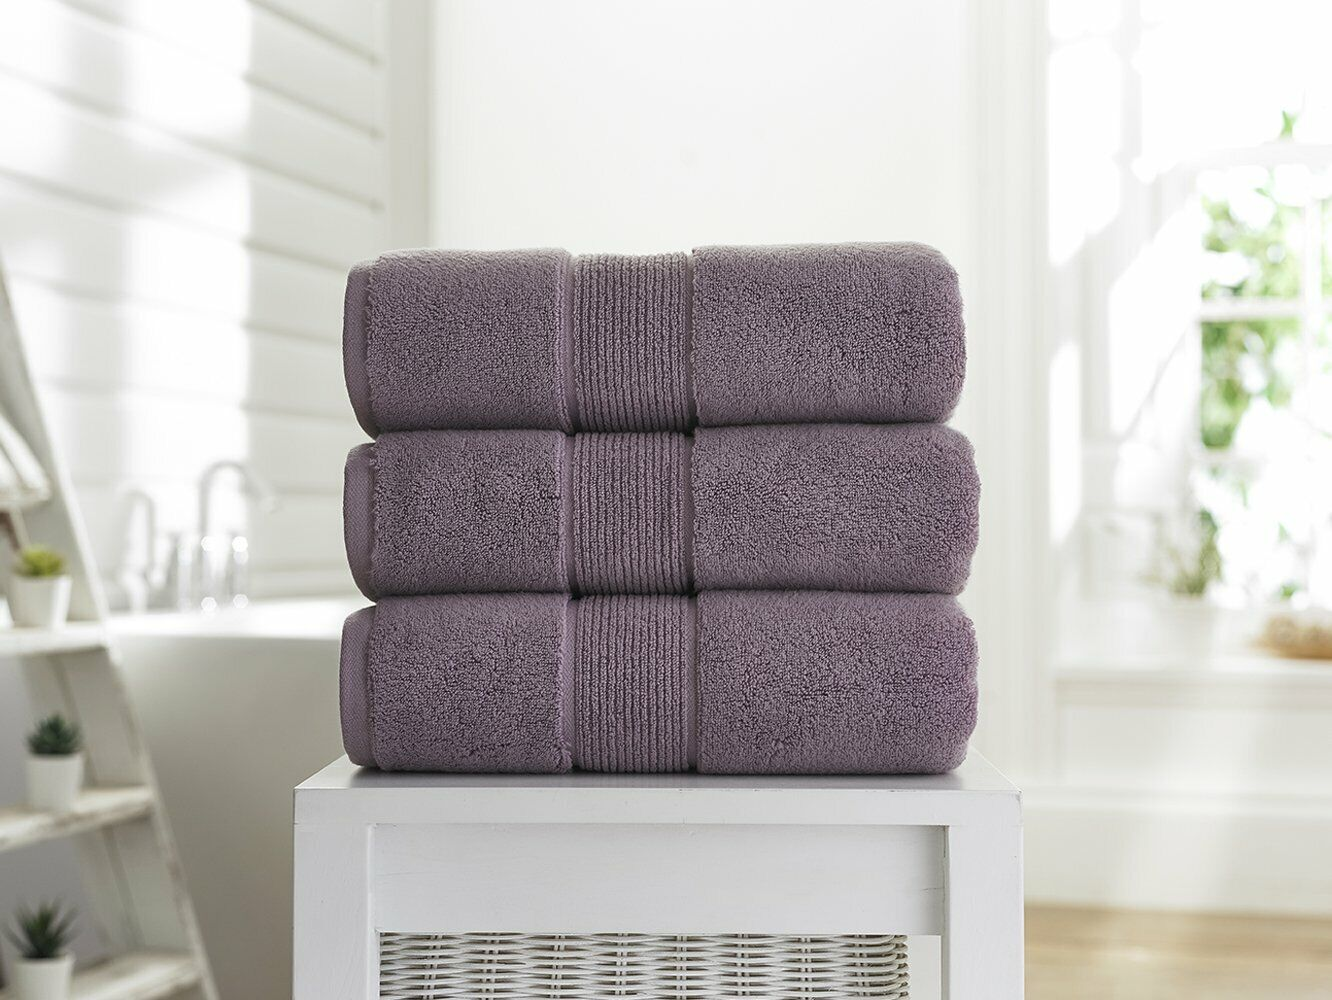 Deyongs Winchester 700gsm Bath Towel and Hand Towel - Lavender